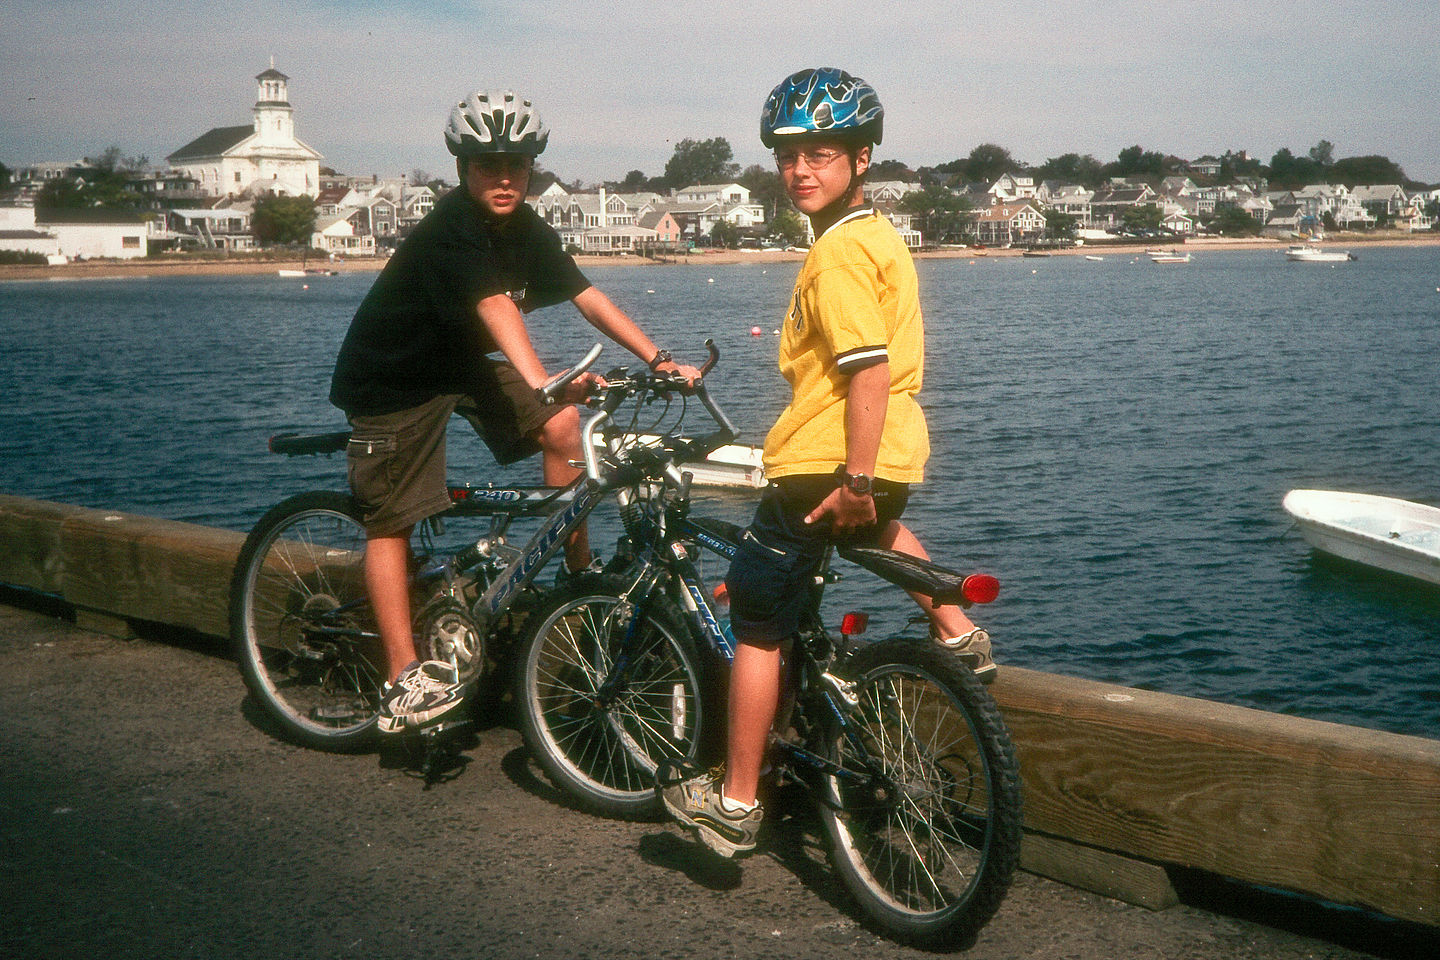 Boys biking in Provincetown